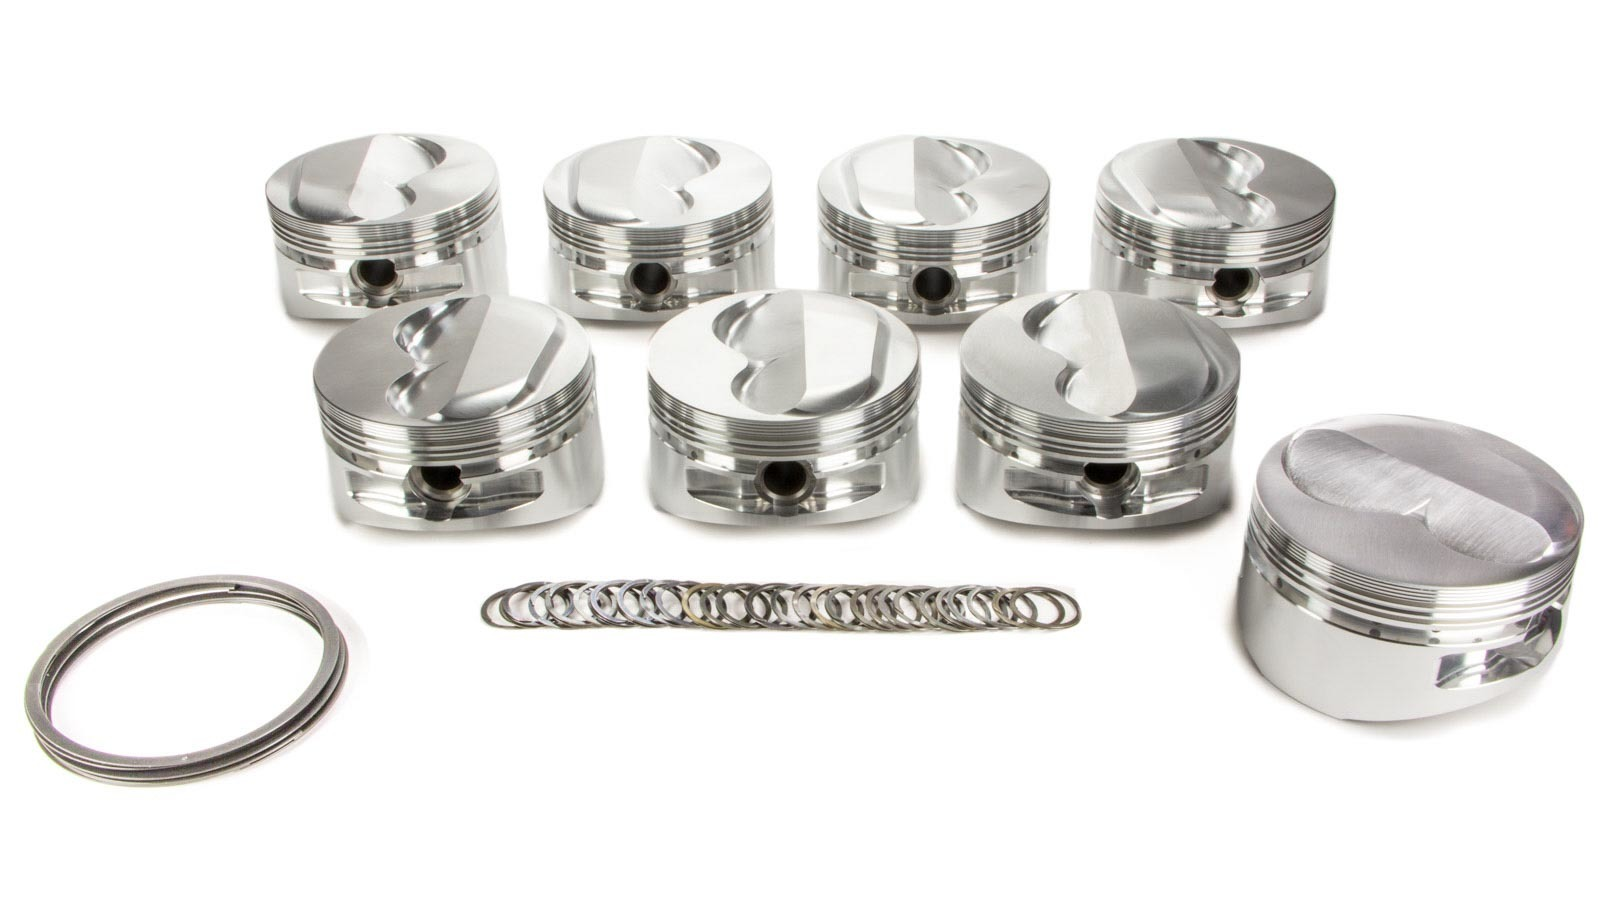 JE Pistons 173586 Piston, Nitrous Series Dome, Forged, 4.155 in Bore, 1/16 x 1/16 x 3/16 in Ring Grooves, Plus 3.0 cc, Small Block Chevy, Set of 8